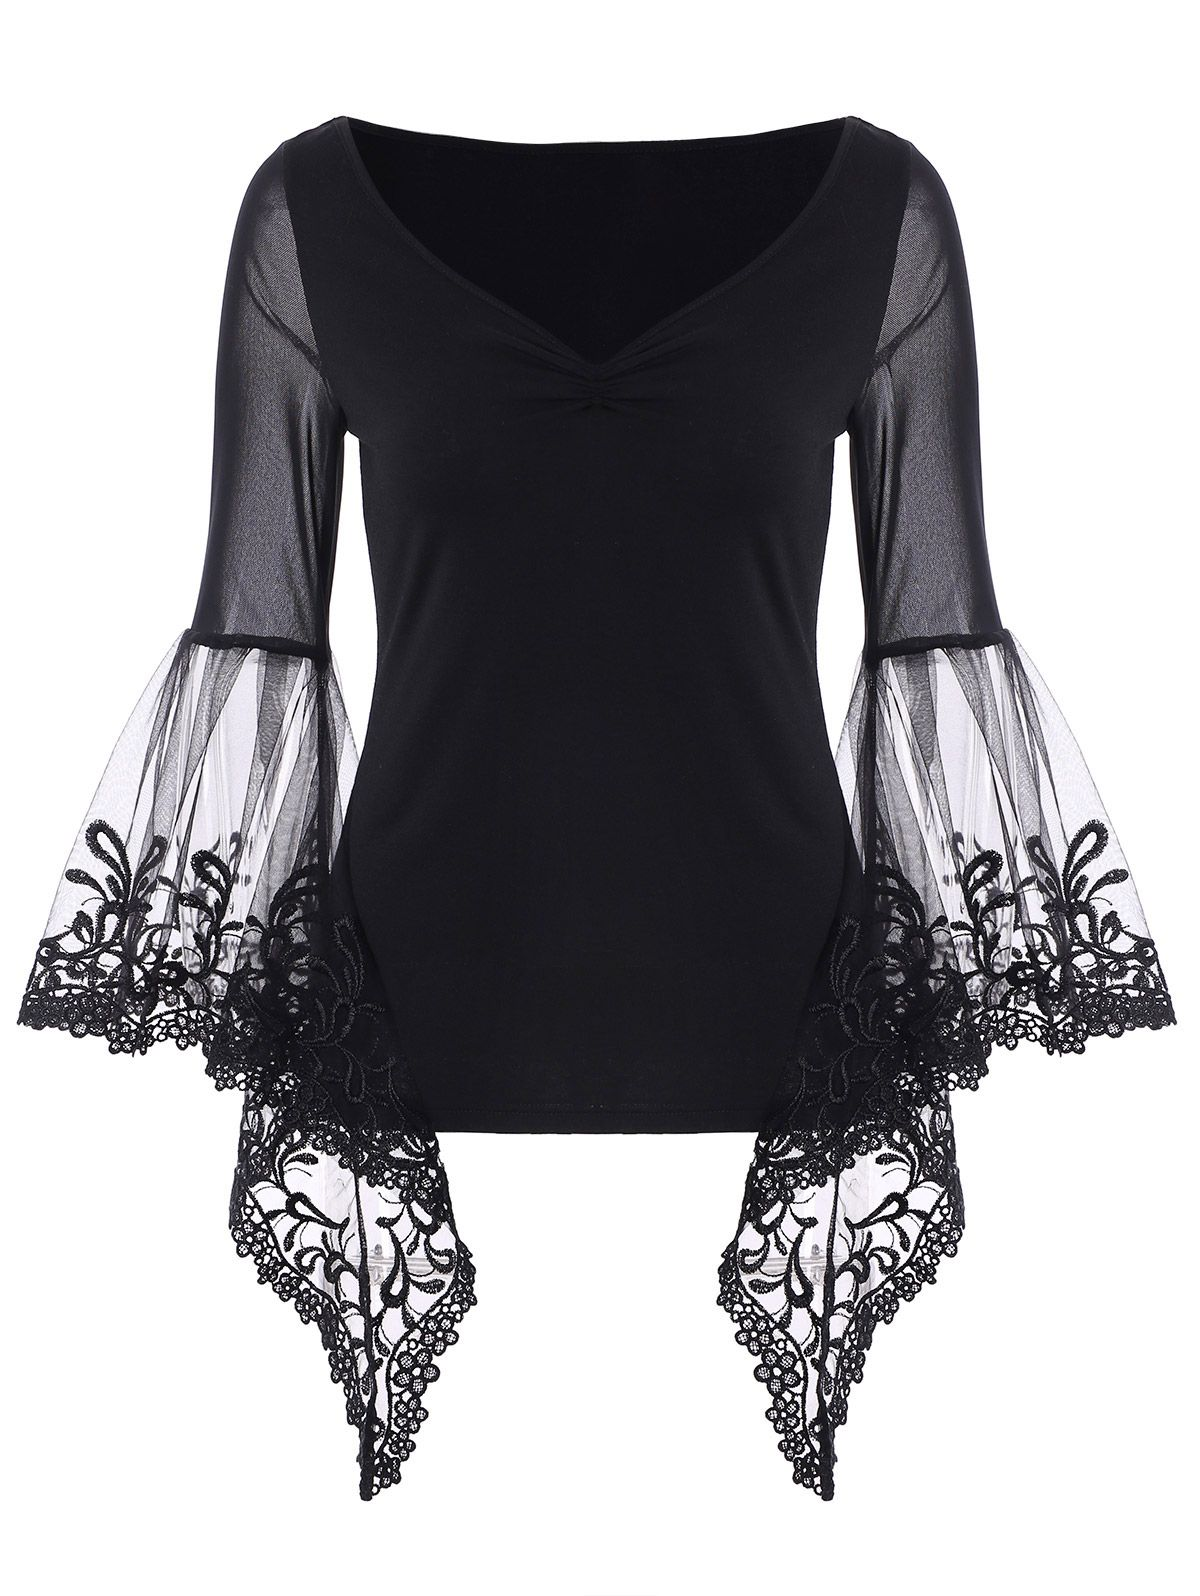 Bell Sleeve Sheer Lace Panel T-Shirt. Great reputation fashion retailer  with large selection of womens ... ca5e957f01e0